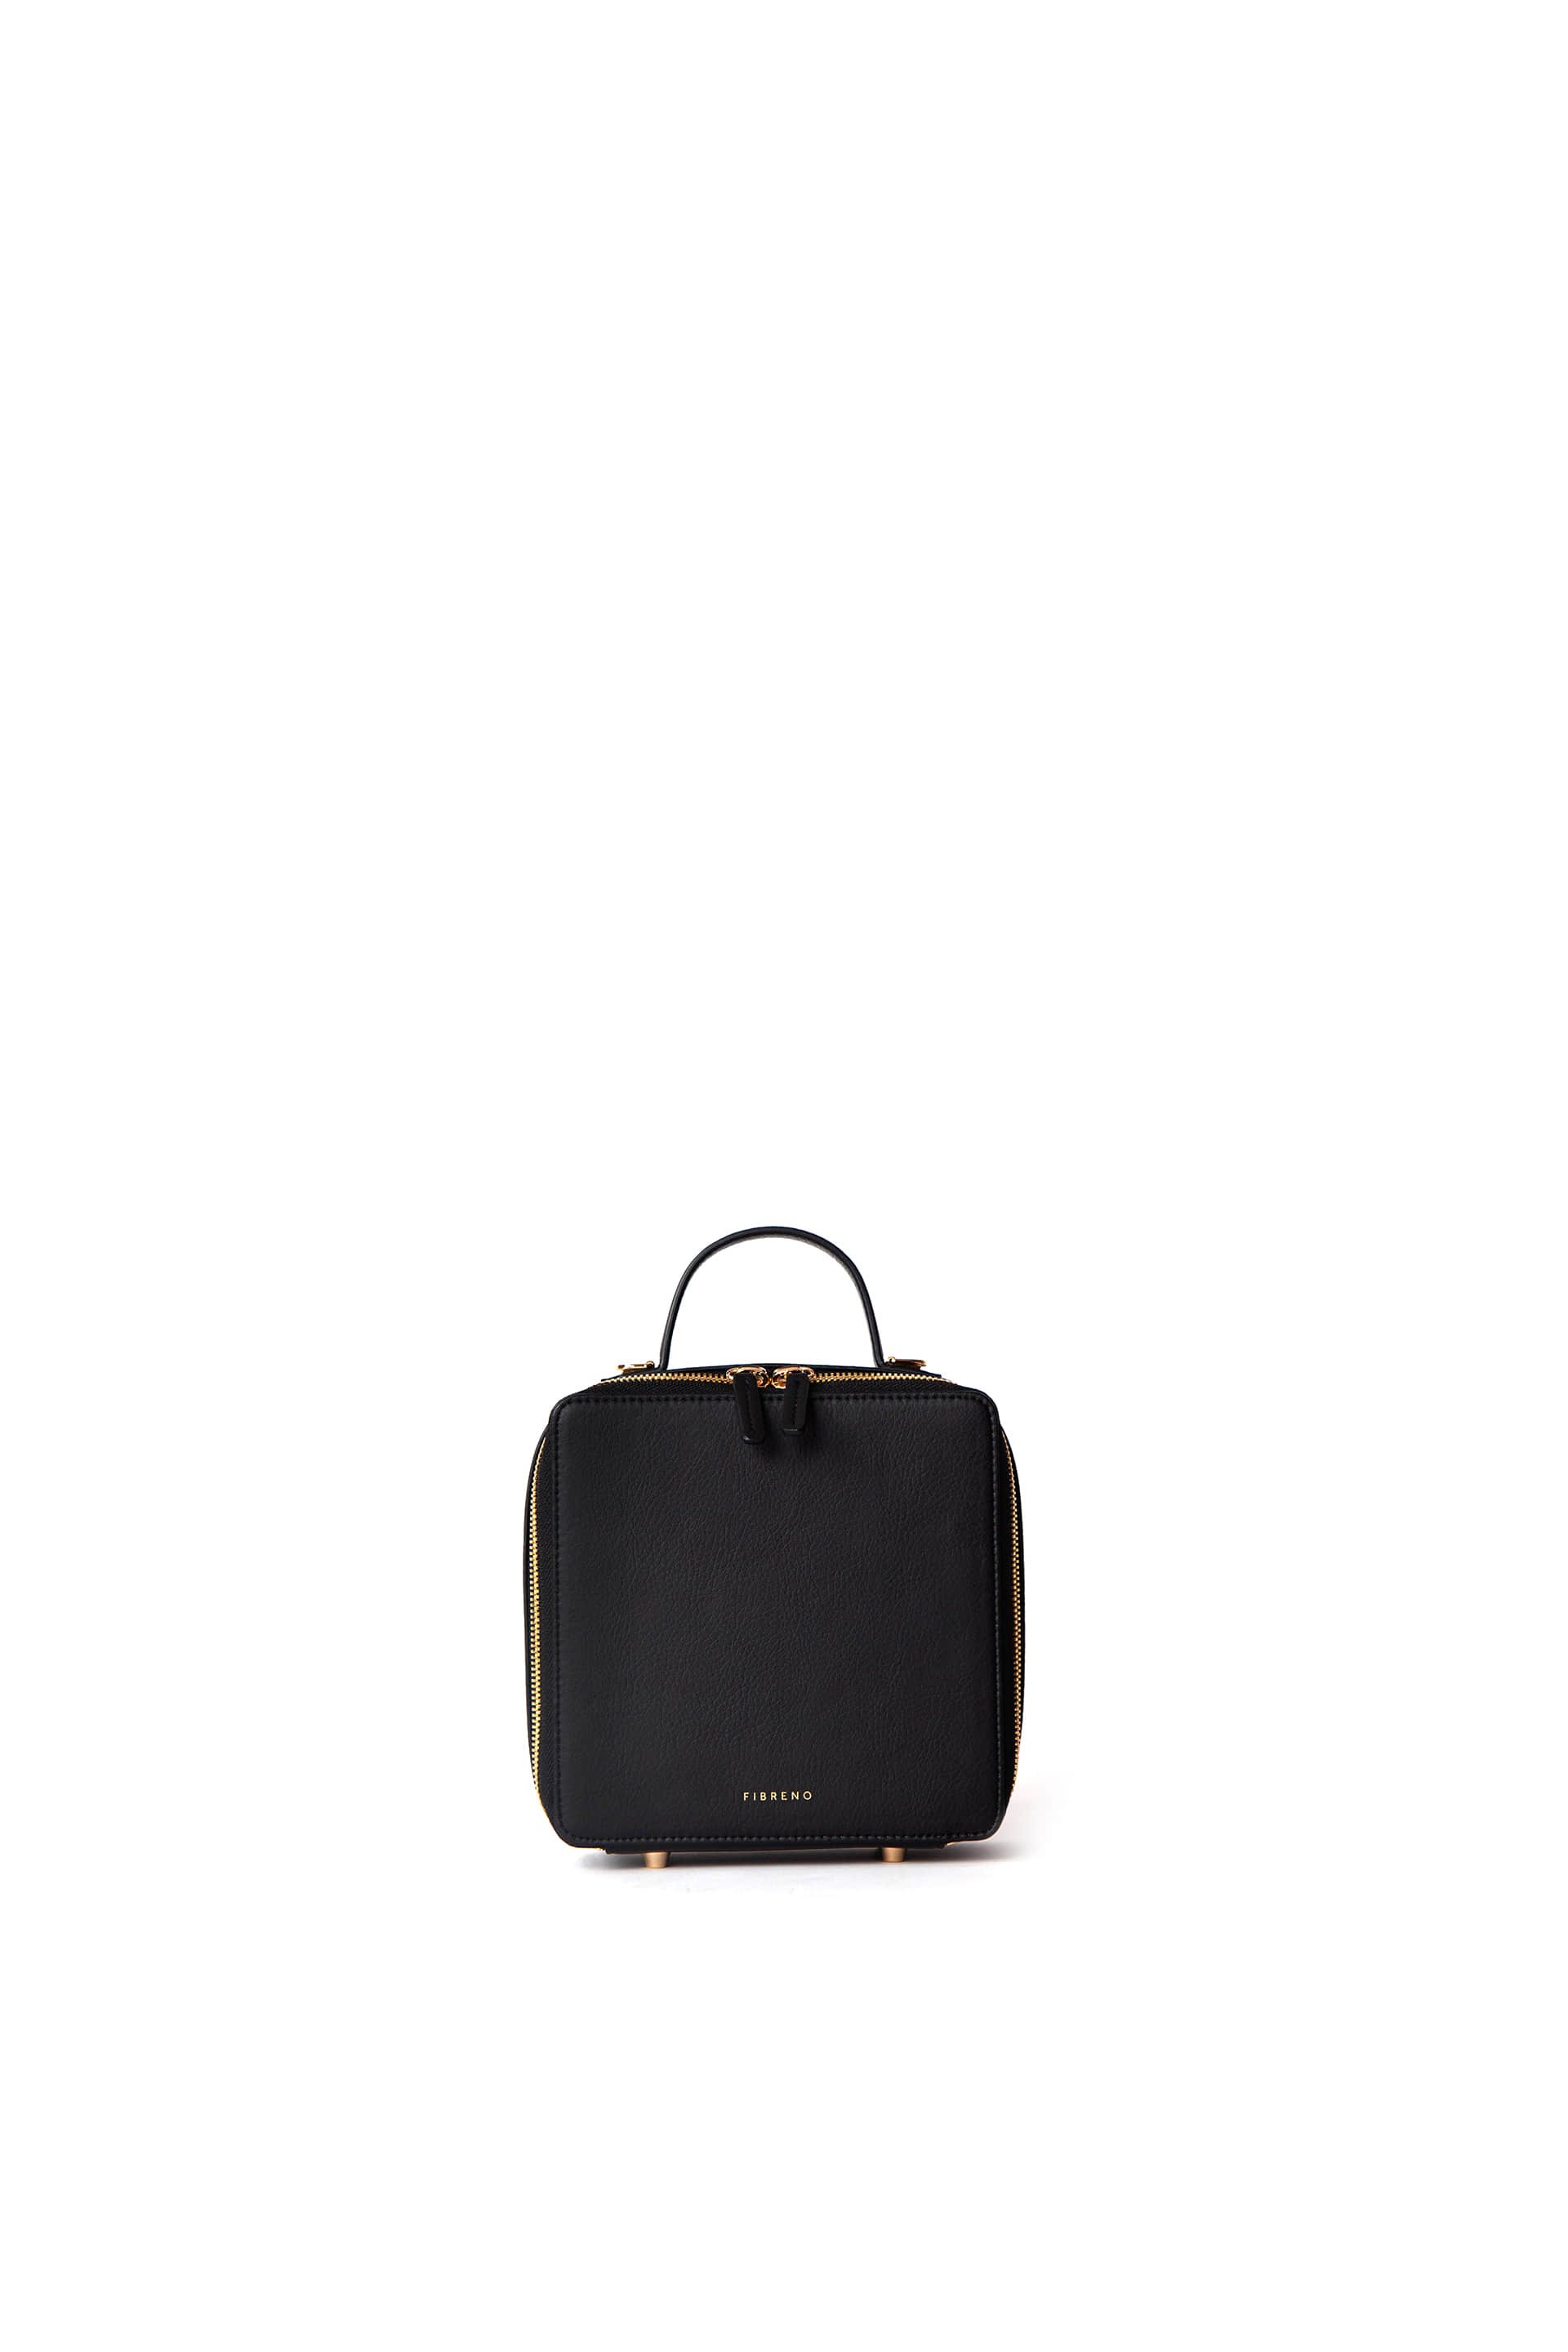 SQUARE BAG 22 Black